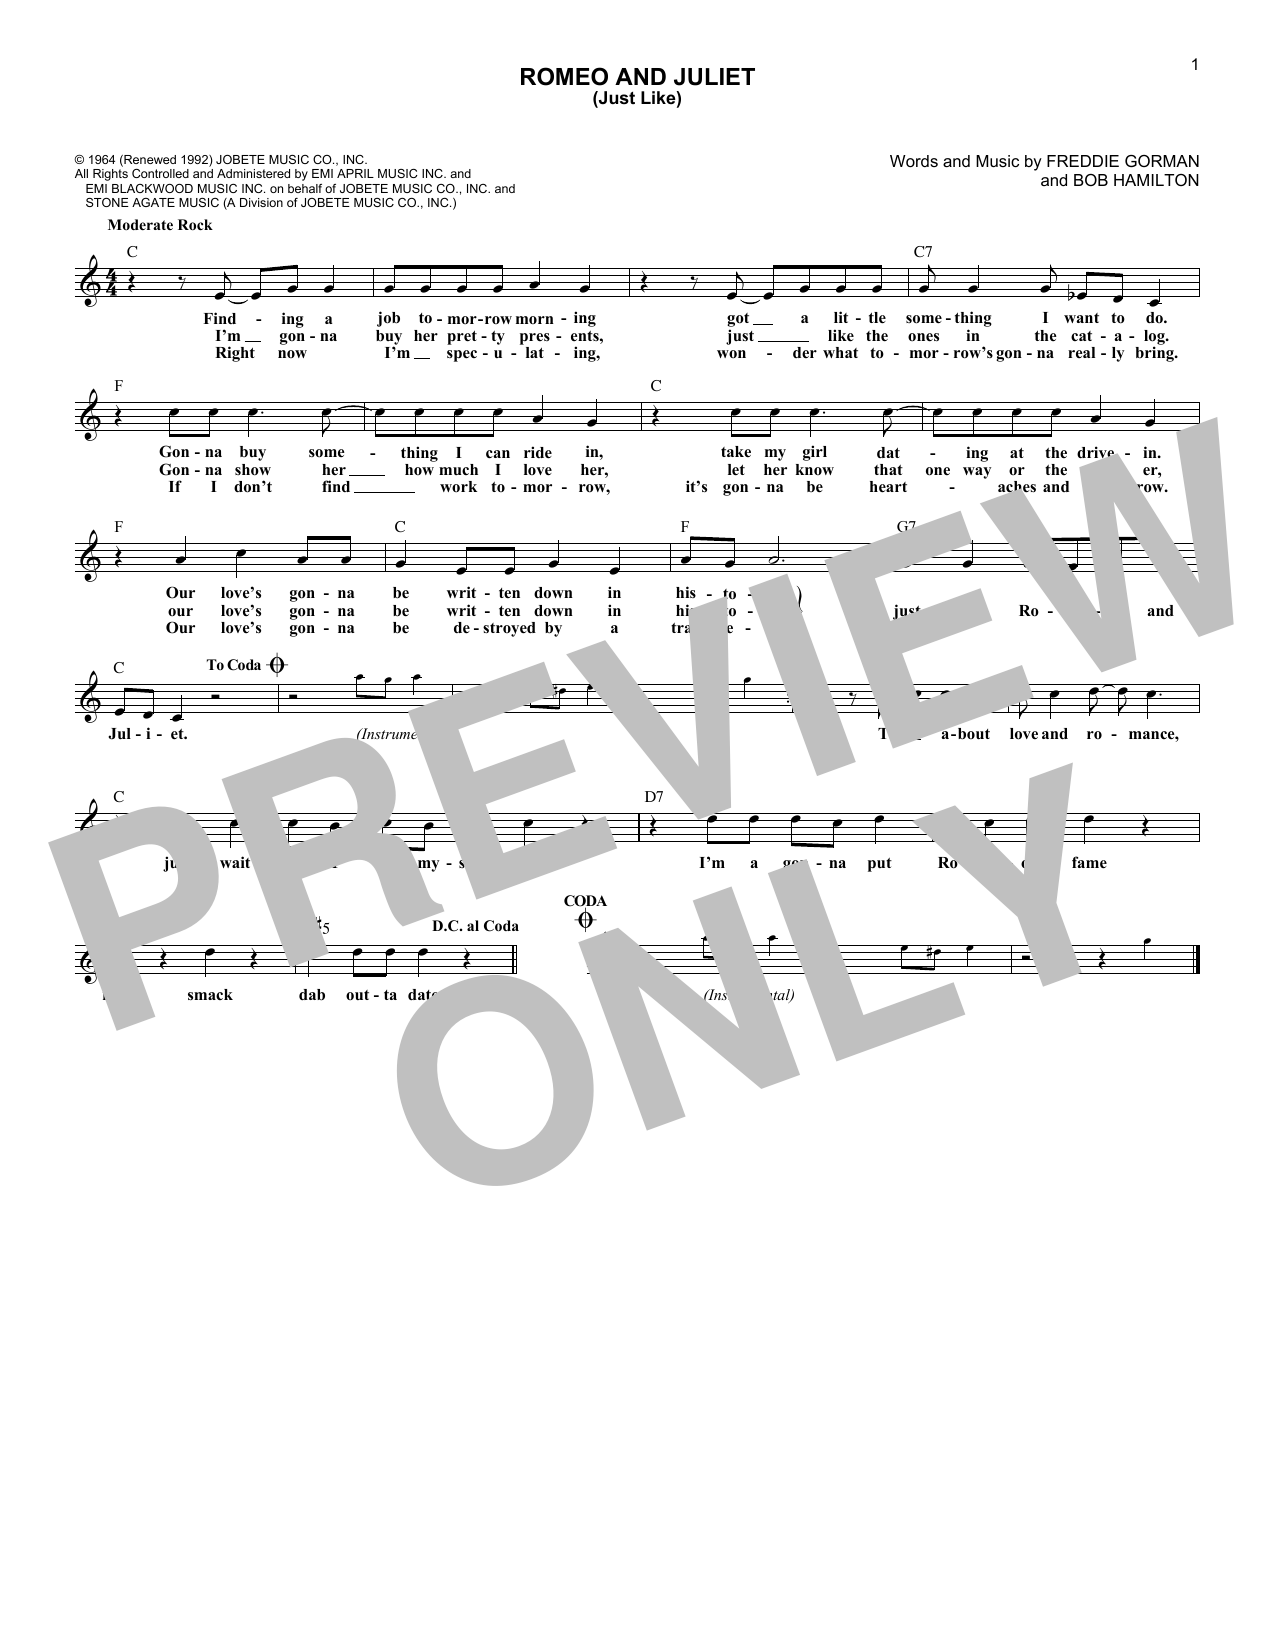 Romeo and Juliet (Just Like) (Lead Sheet / Fake Book)